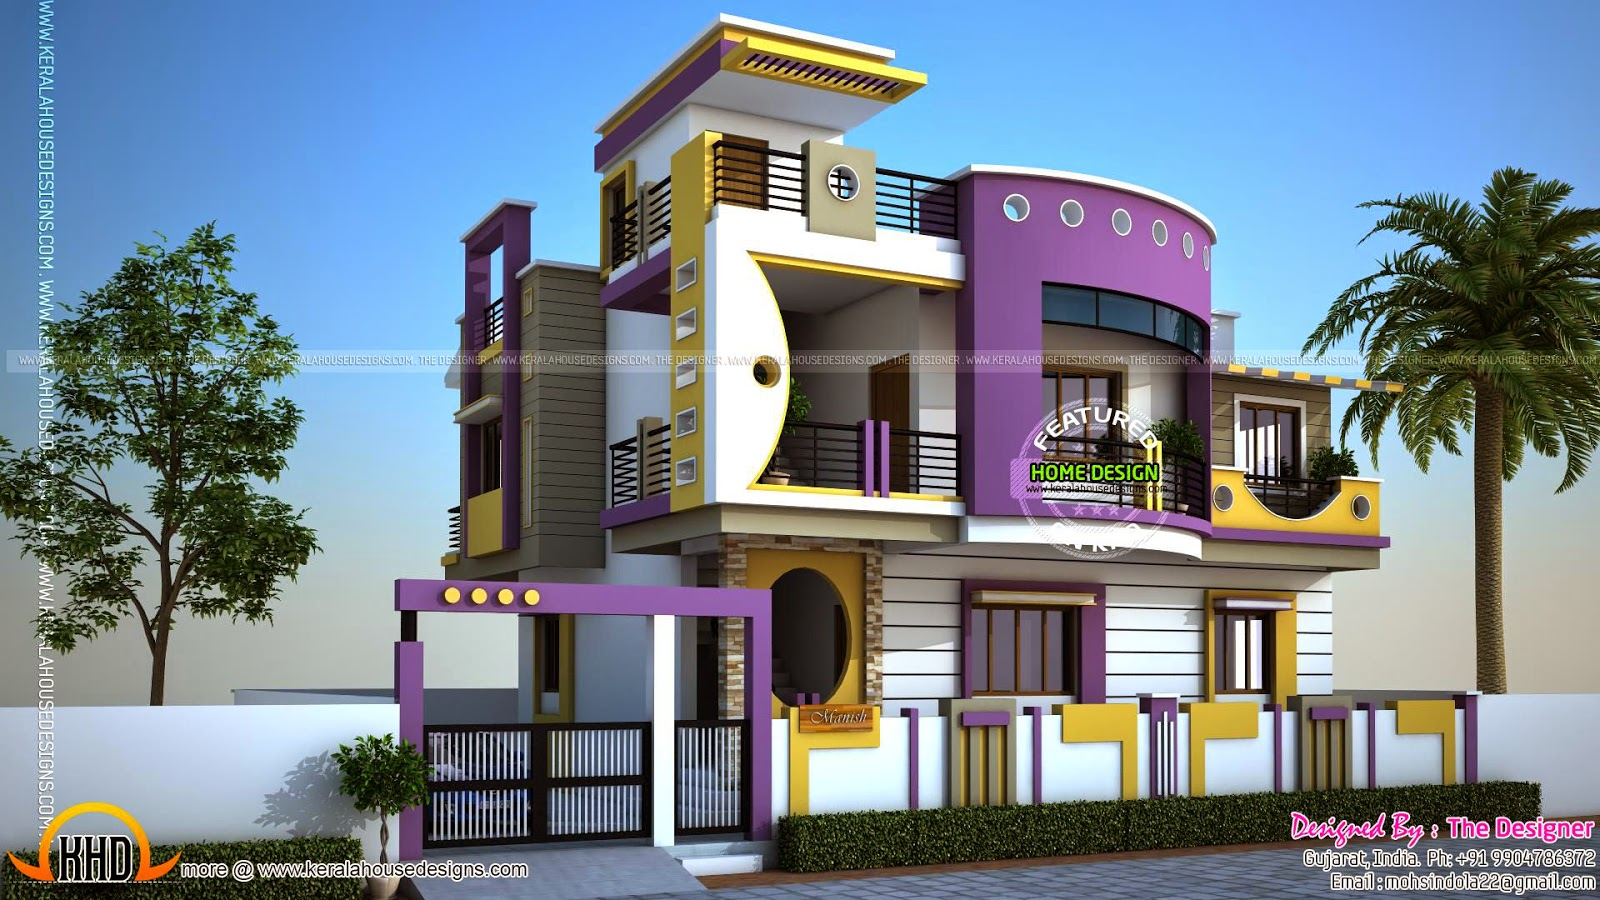 House exterior designs in contemporary style kerala home for Home design images gallery